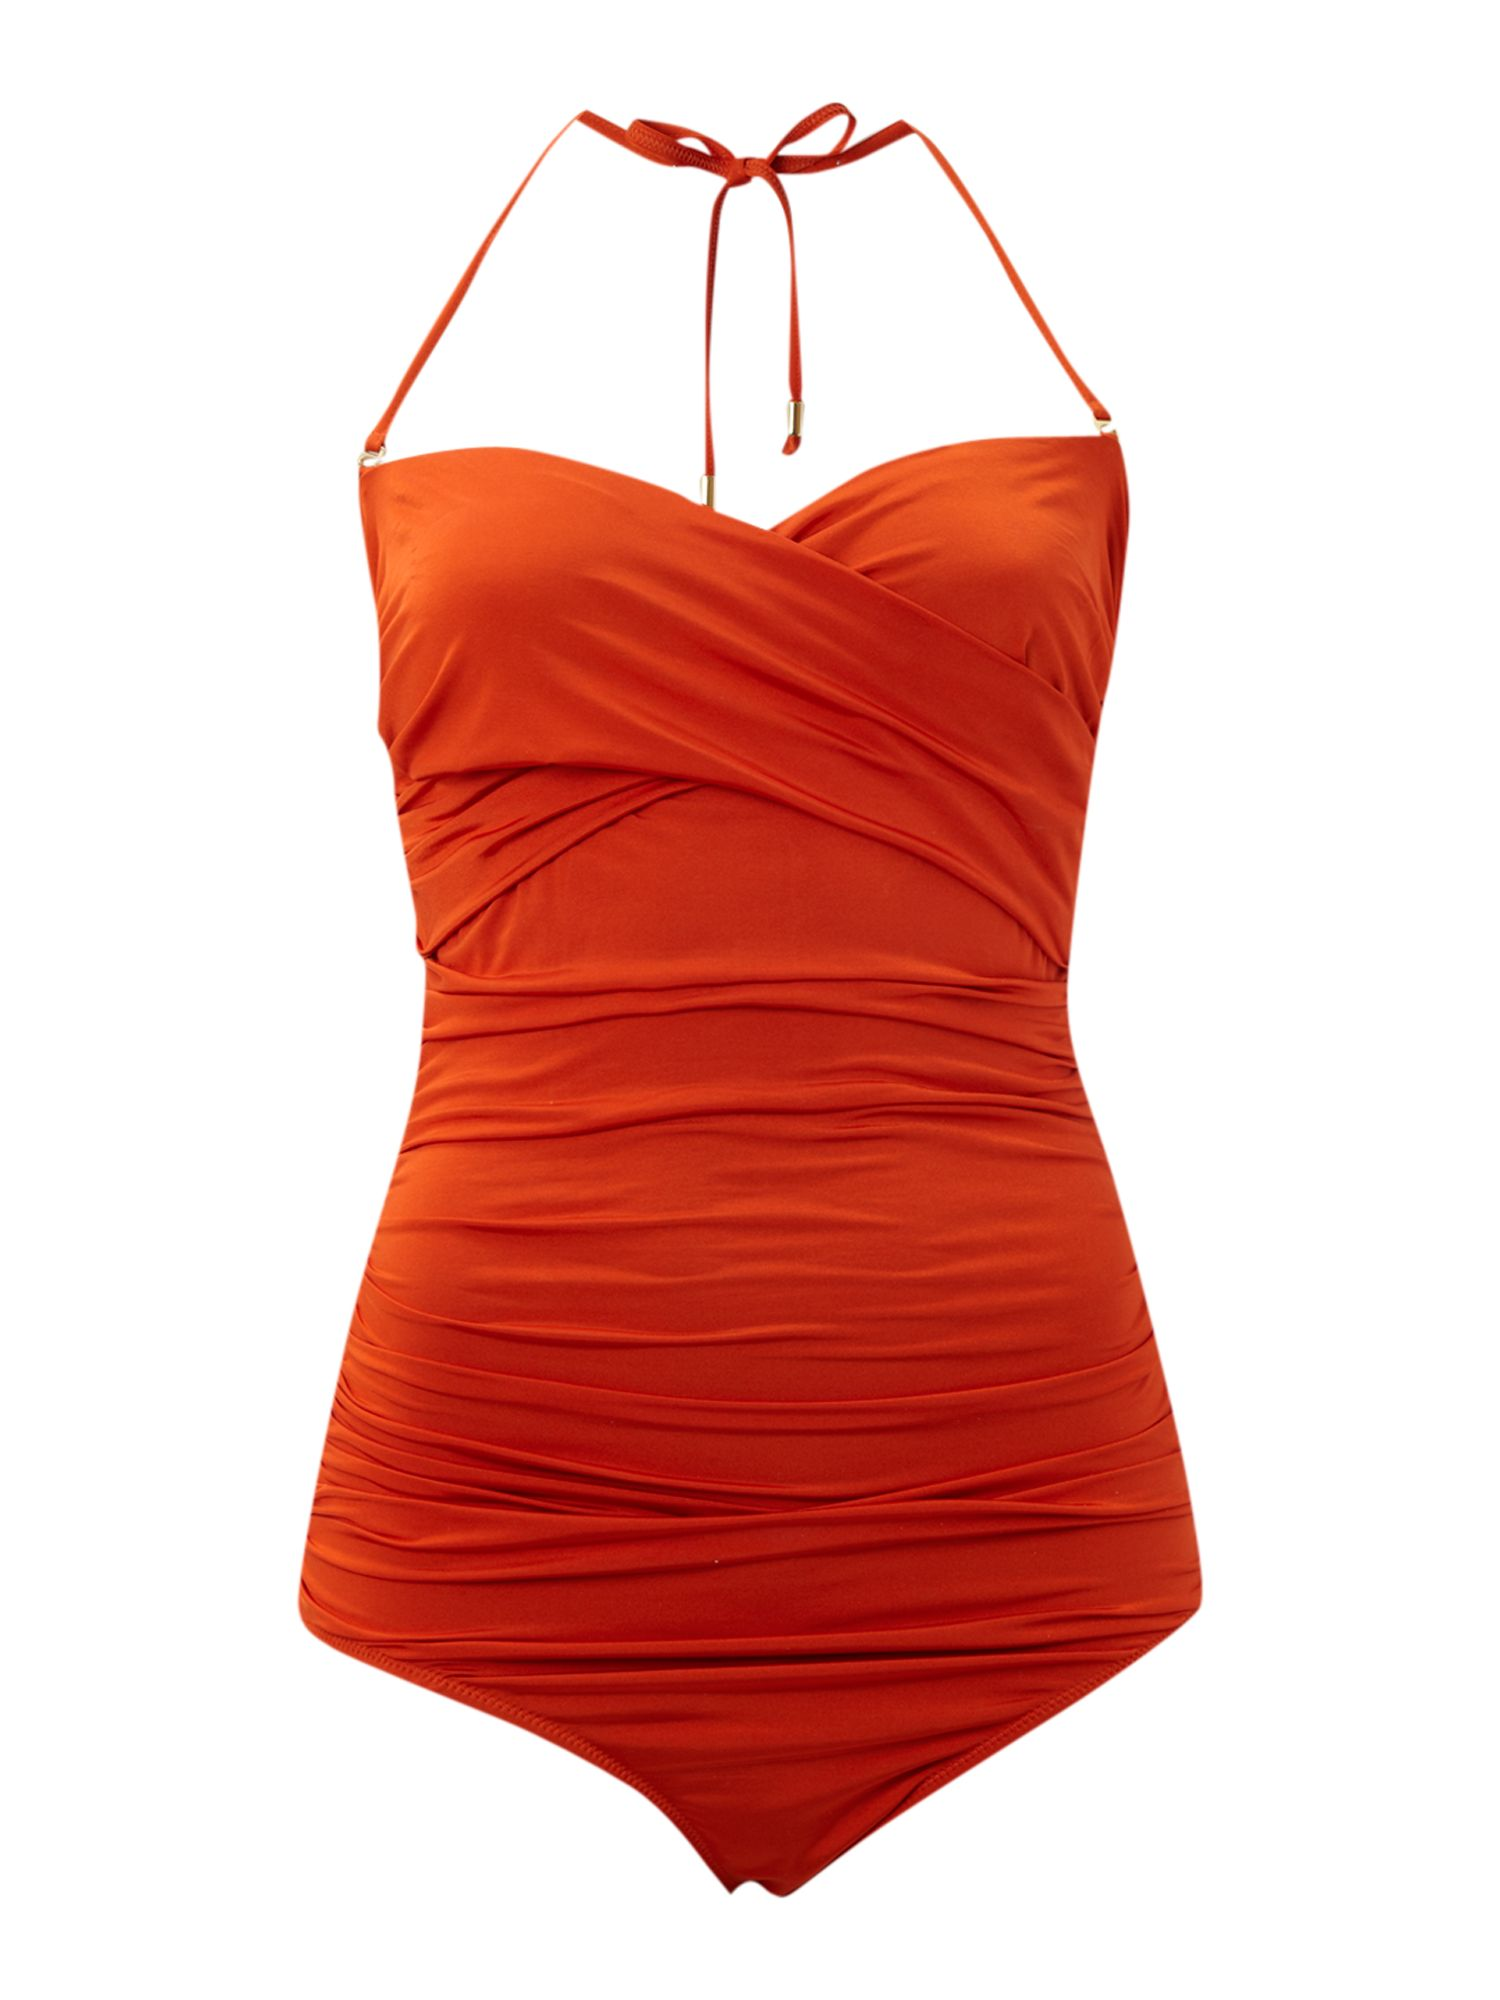 Twist bandeau swimming costume